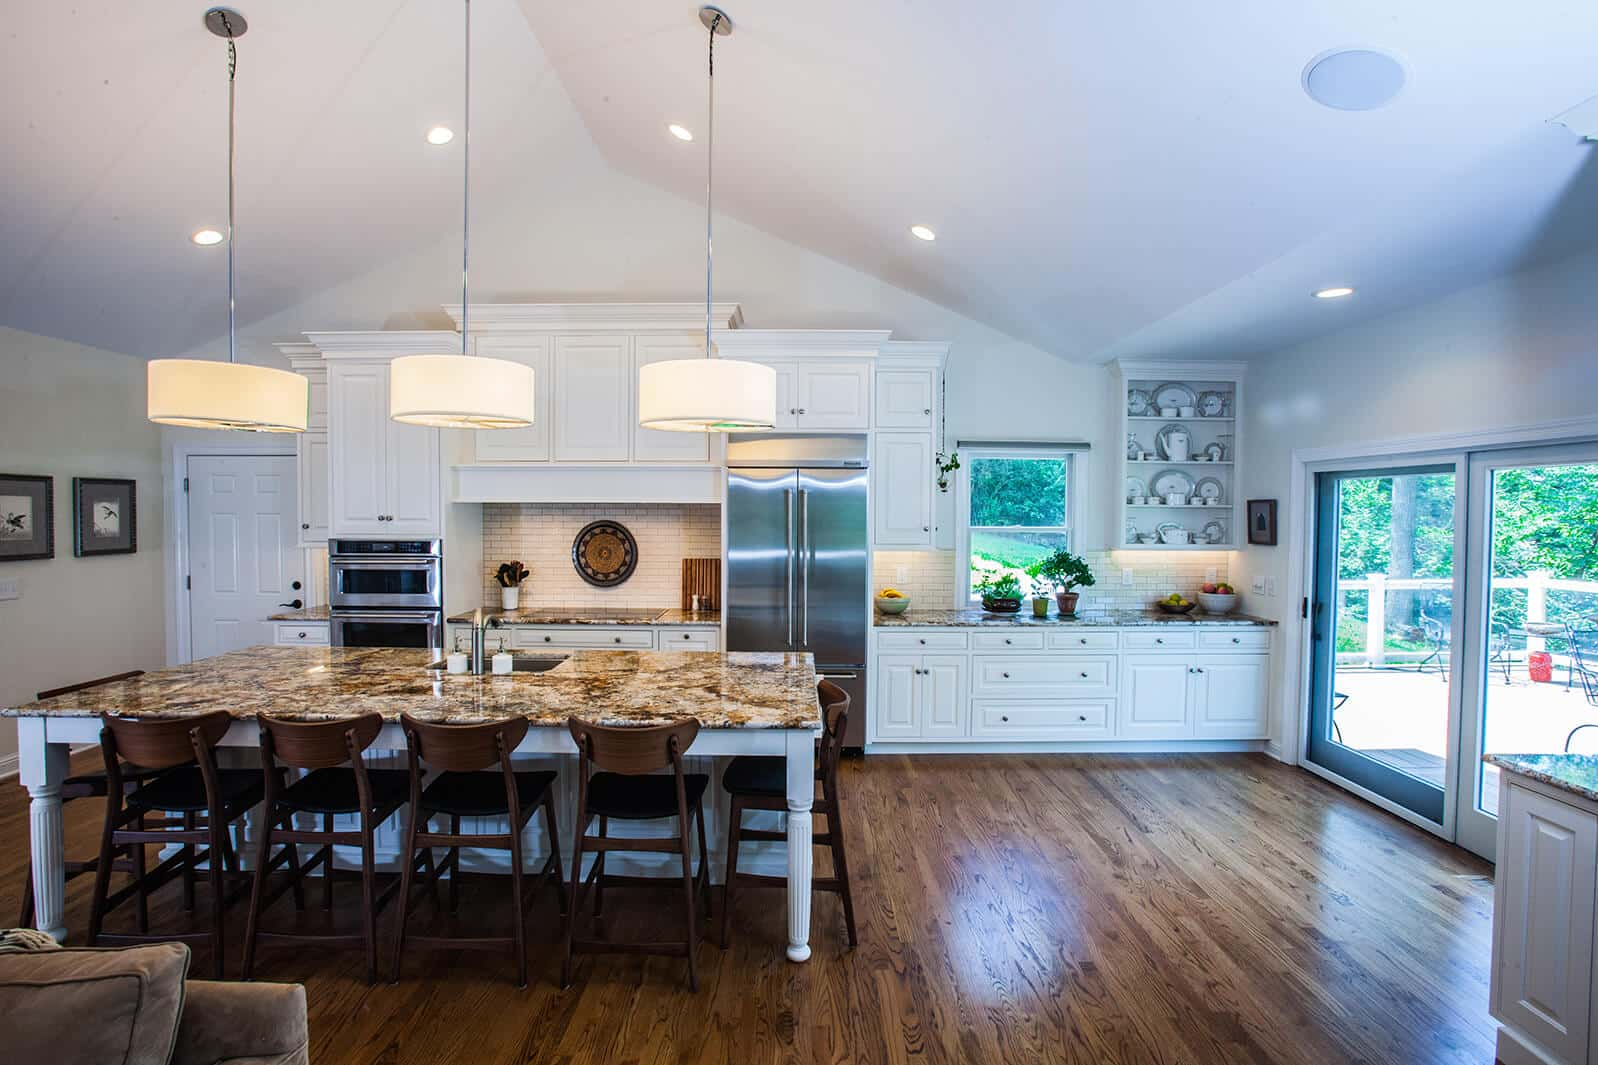 Open Concept Kitchen with Large EatIn Island  Callier